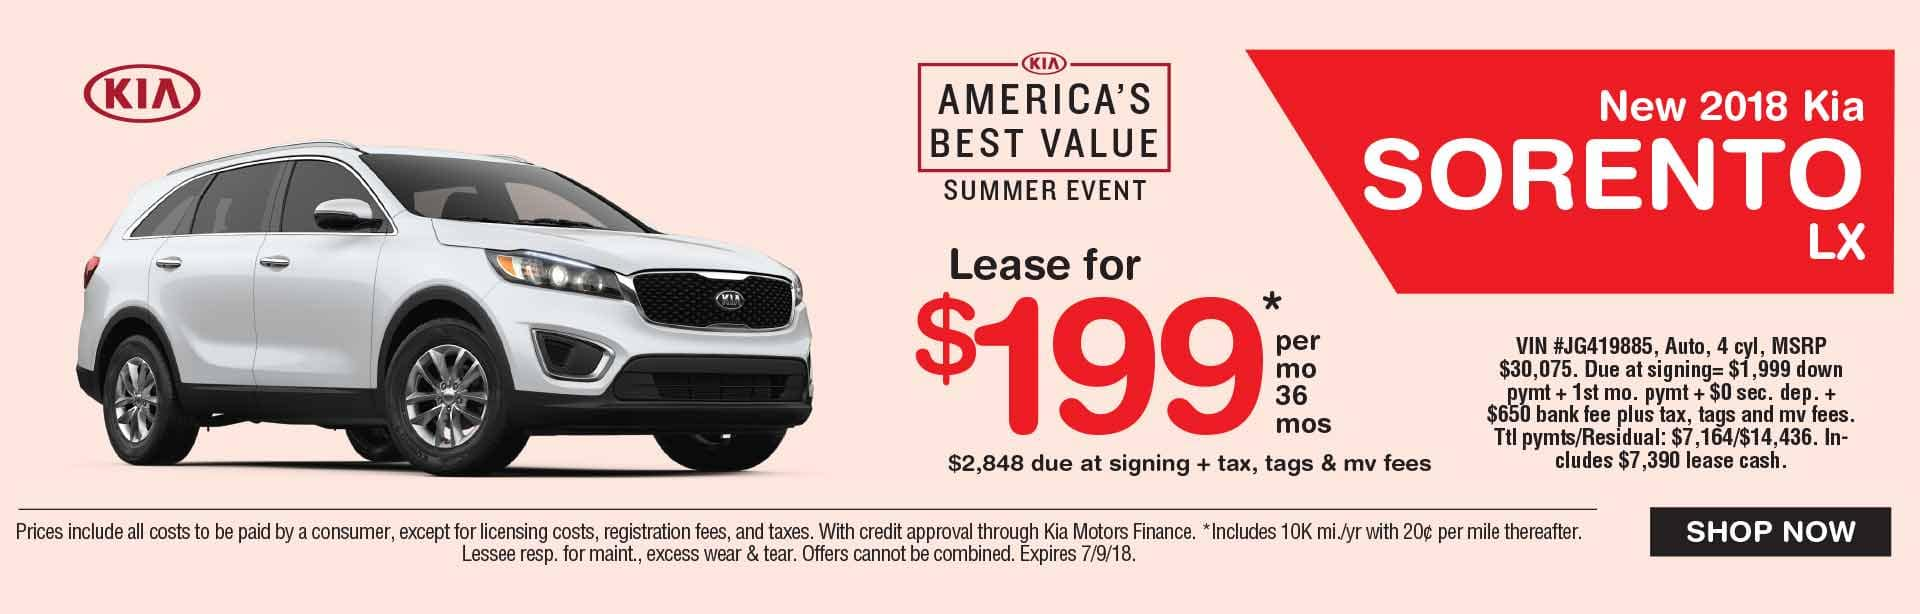 Global Kia Sorento Lease Special